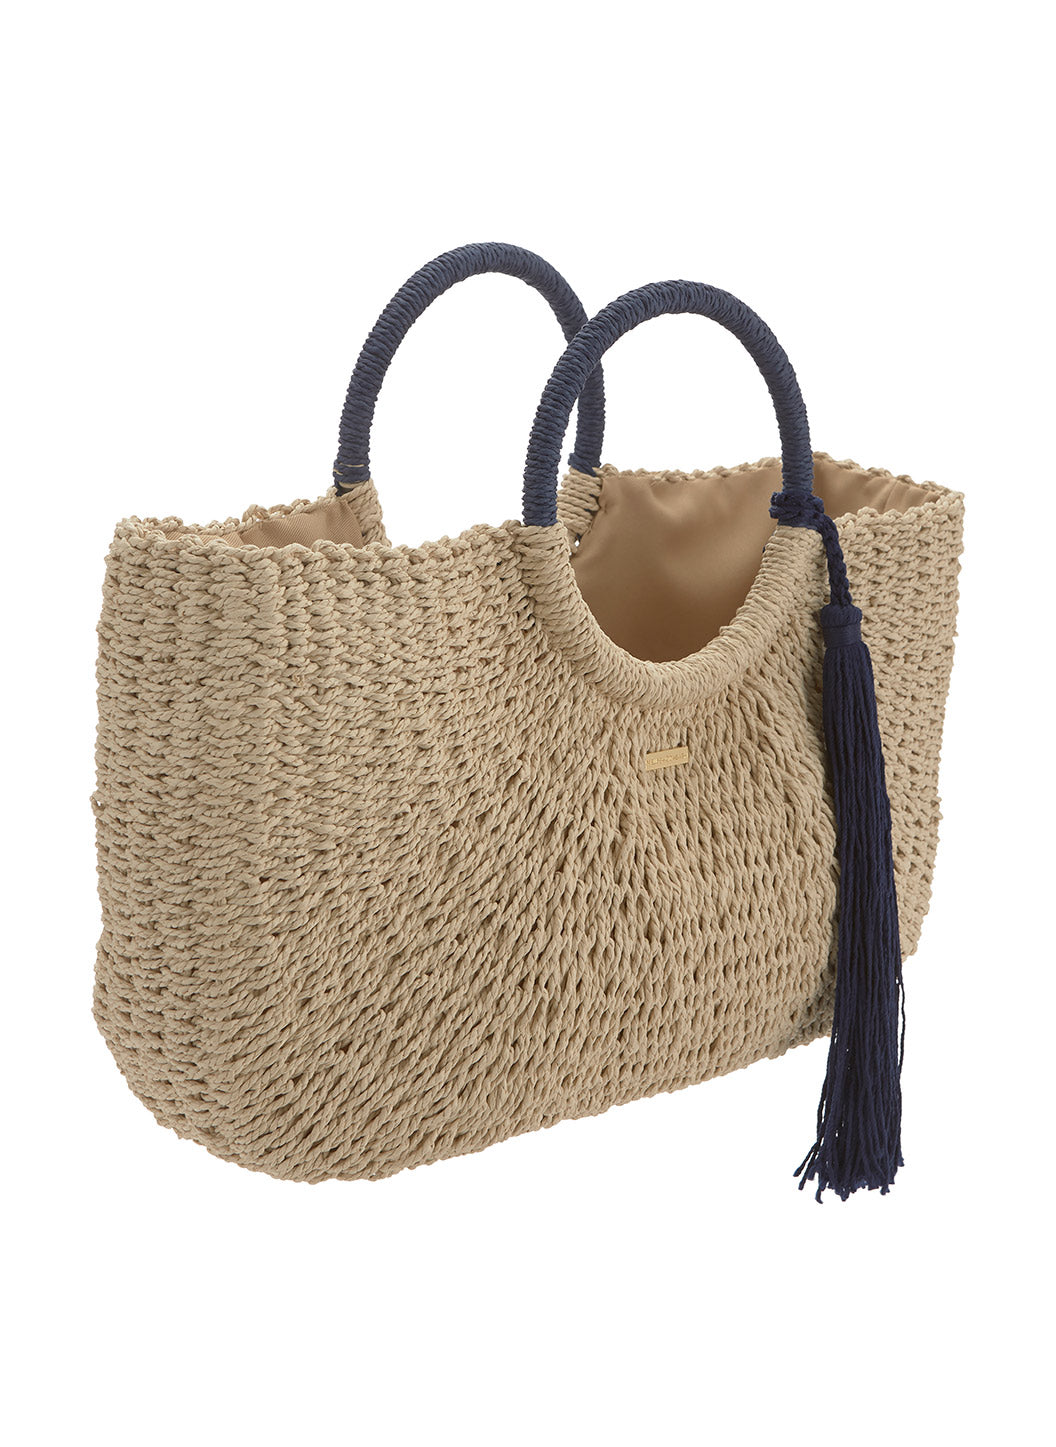 Sorrento Woven Basket Tassle Bag Natural Navy - Melissa Odabash Bags